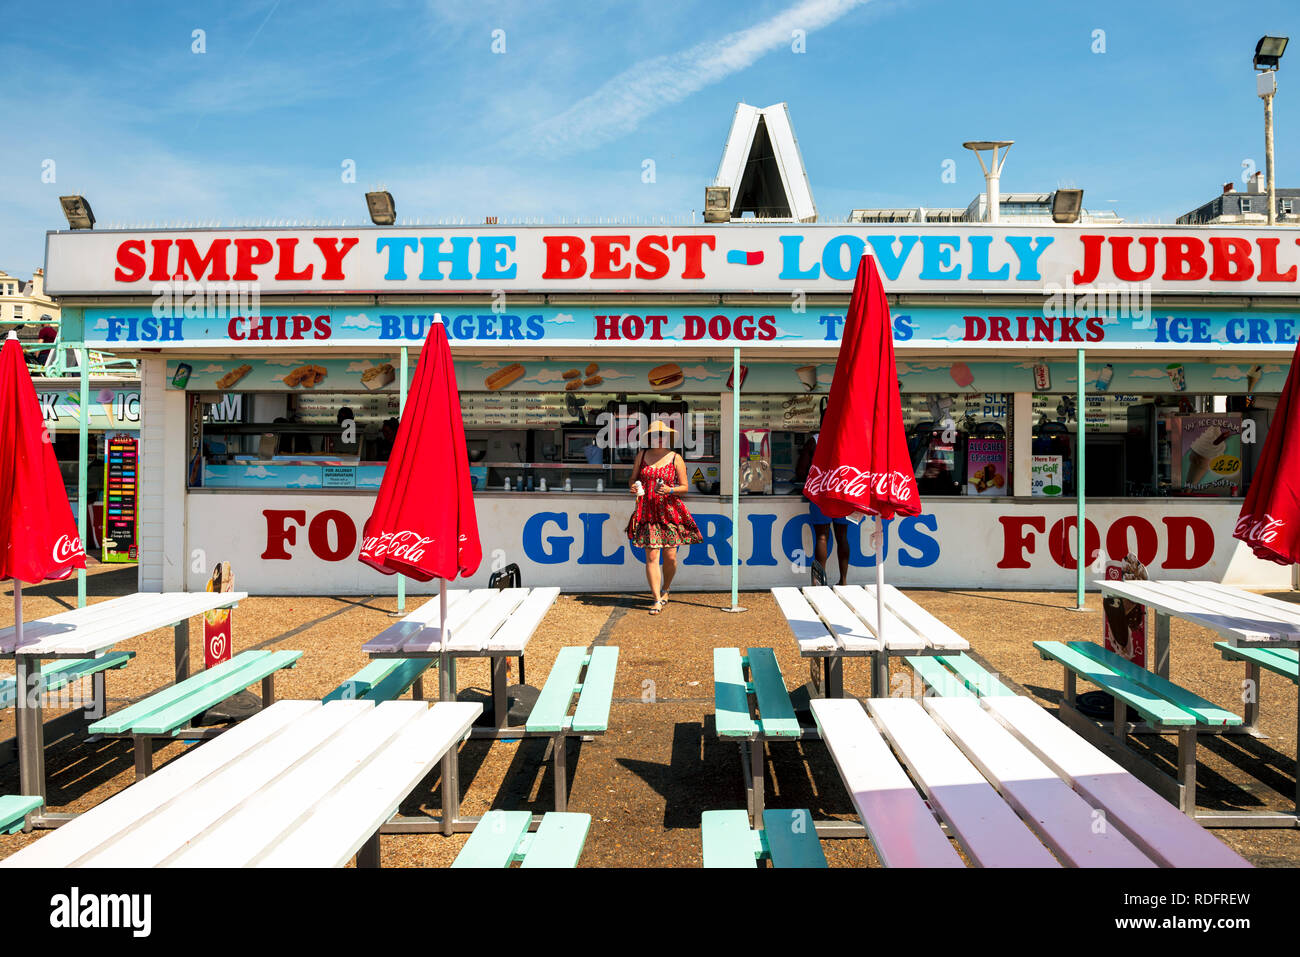 Simply The Best Fish & Chips and Burger Bar in Brighton, UK. - Stock Image